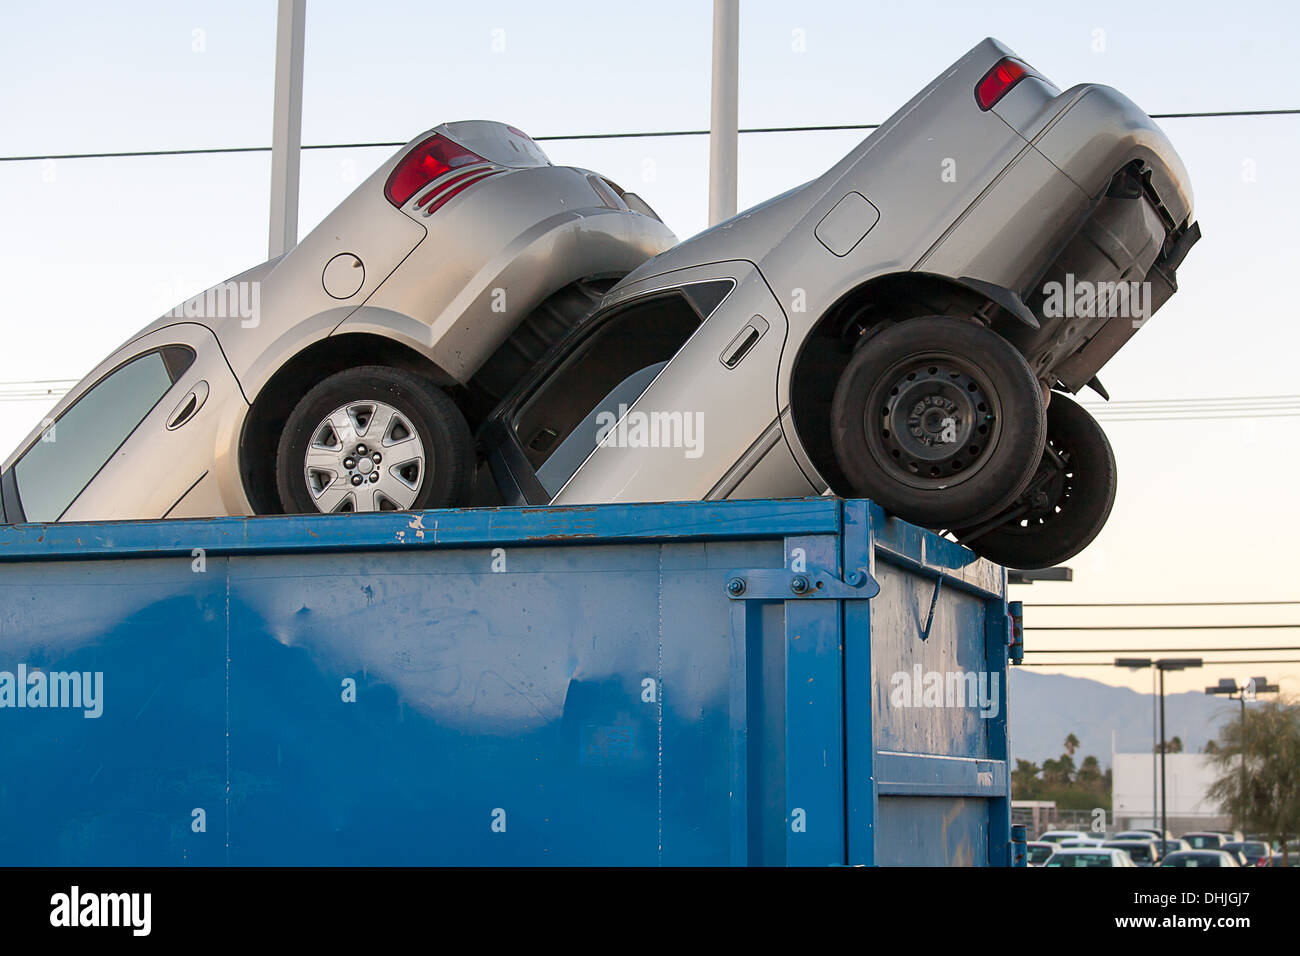 2 junk cars in a dumpster Stock Photo: 62488447 - Alamy